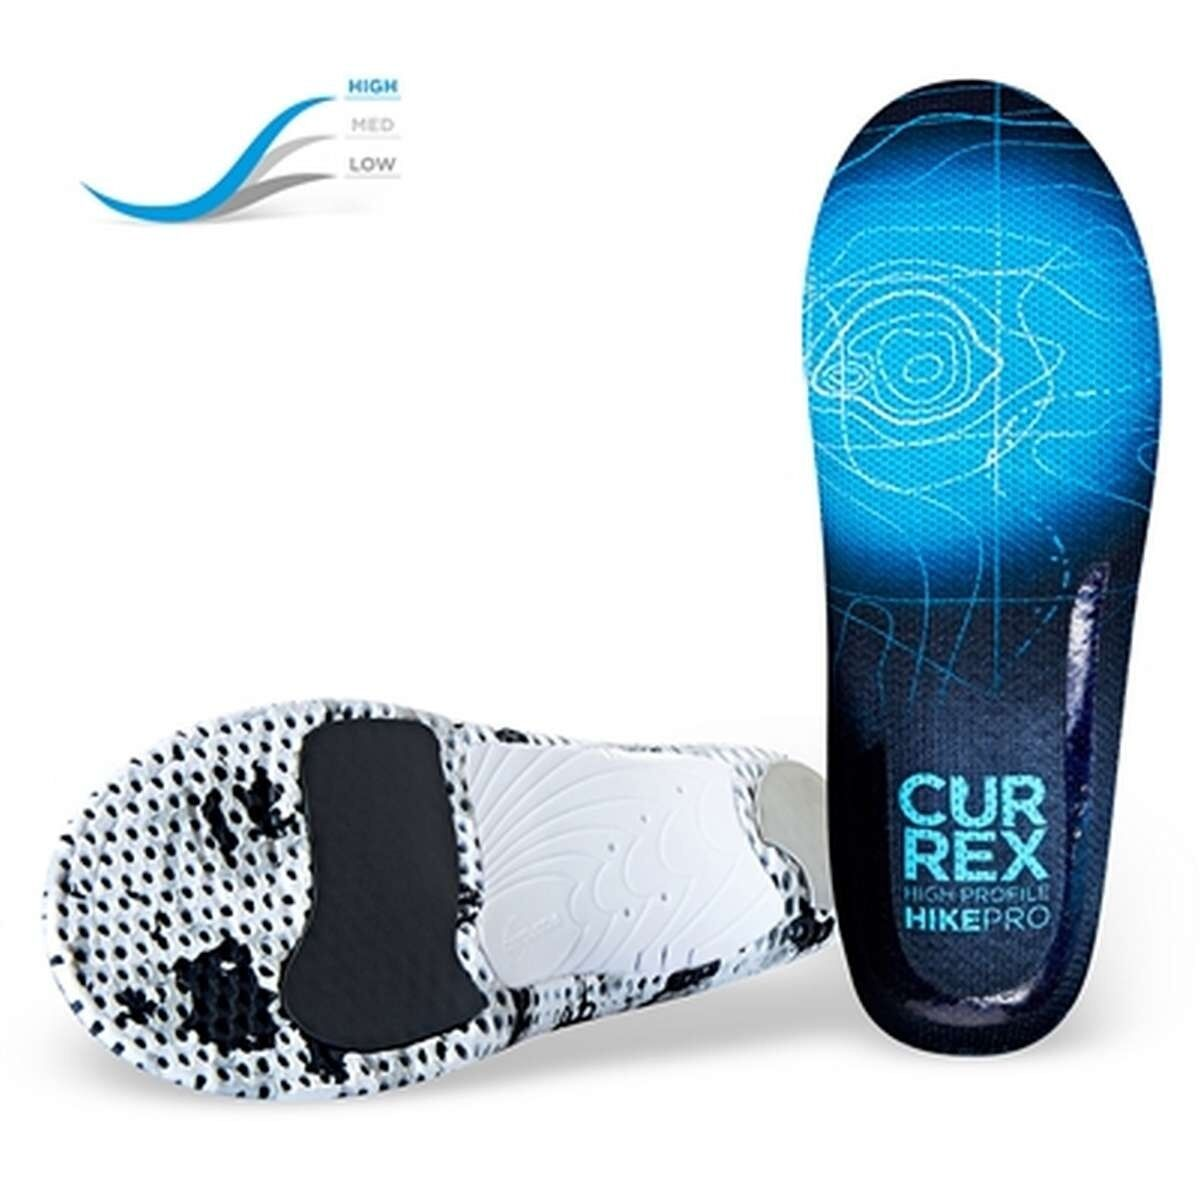 CurrexSole HikePro High Arch  - supportive walking insoles